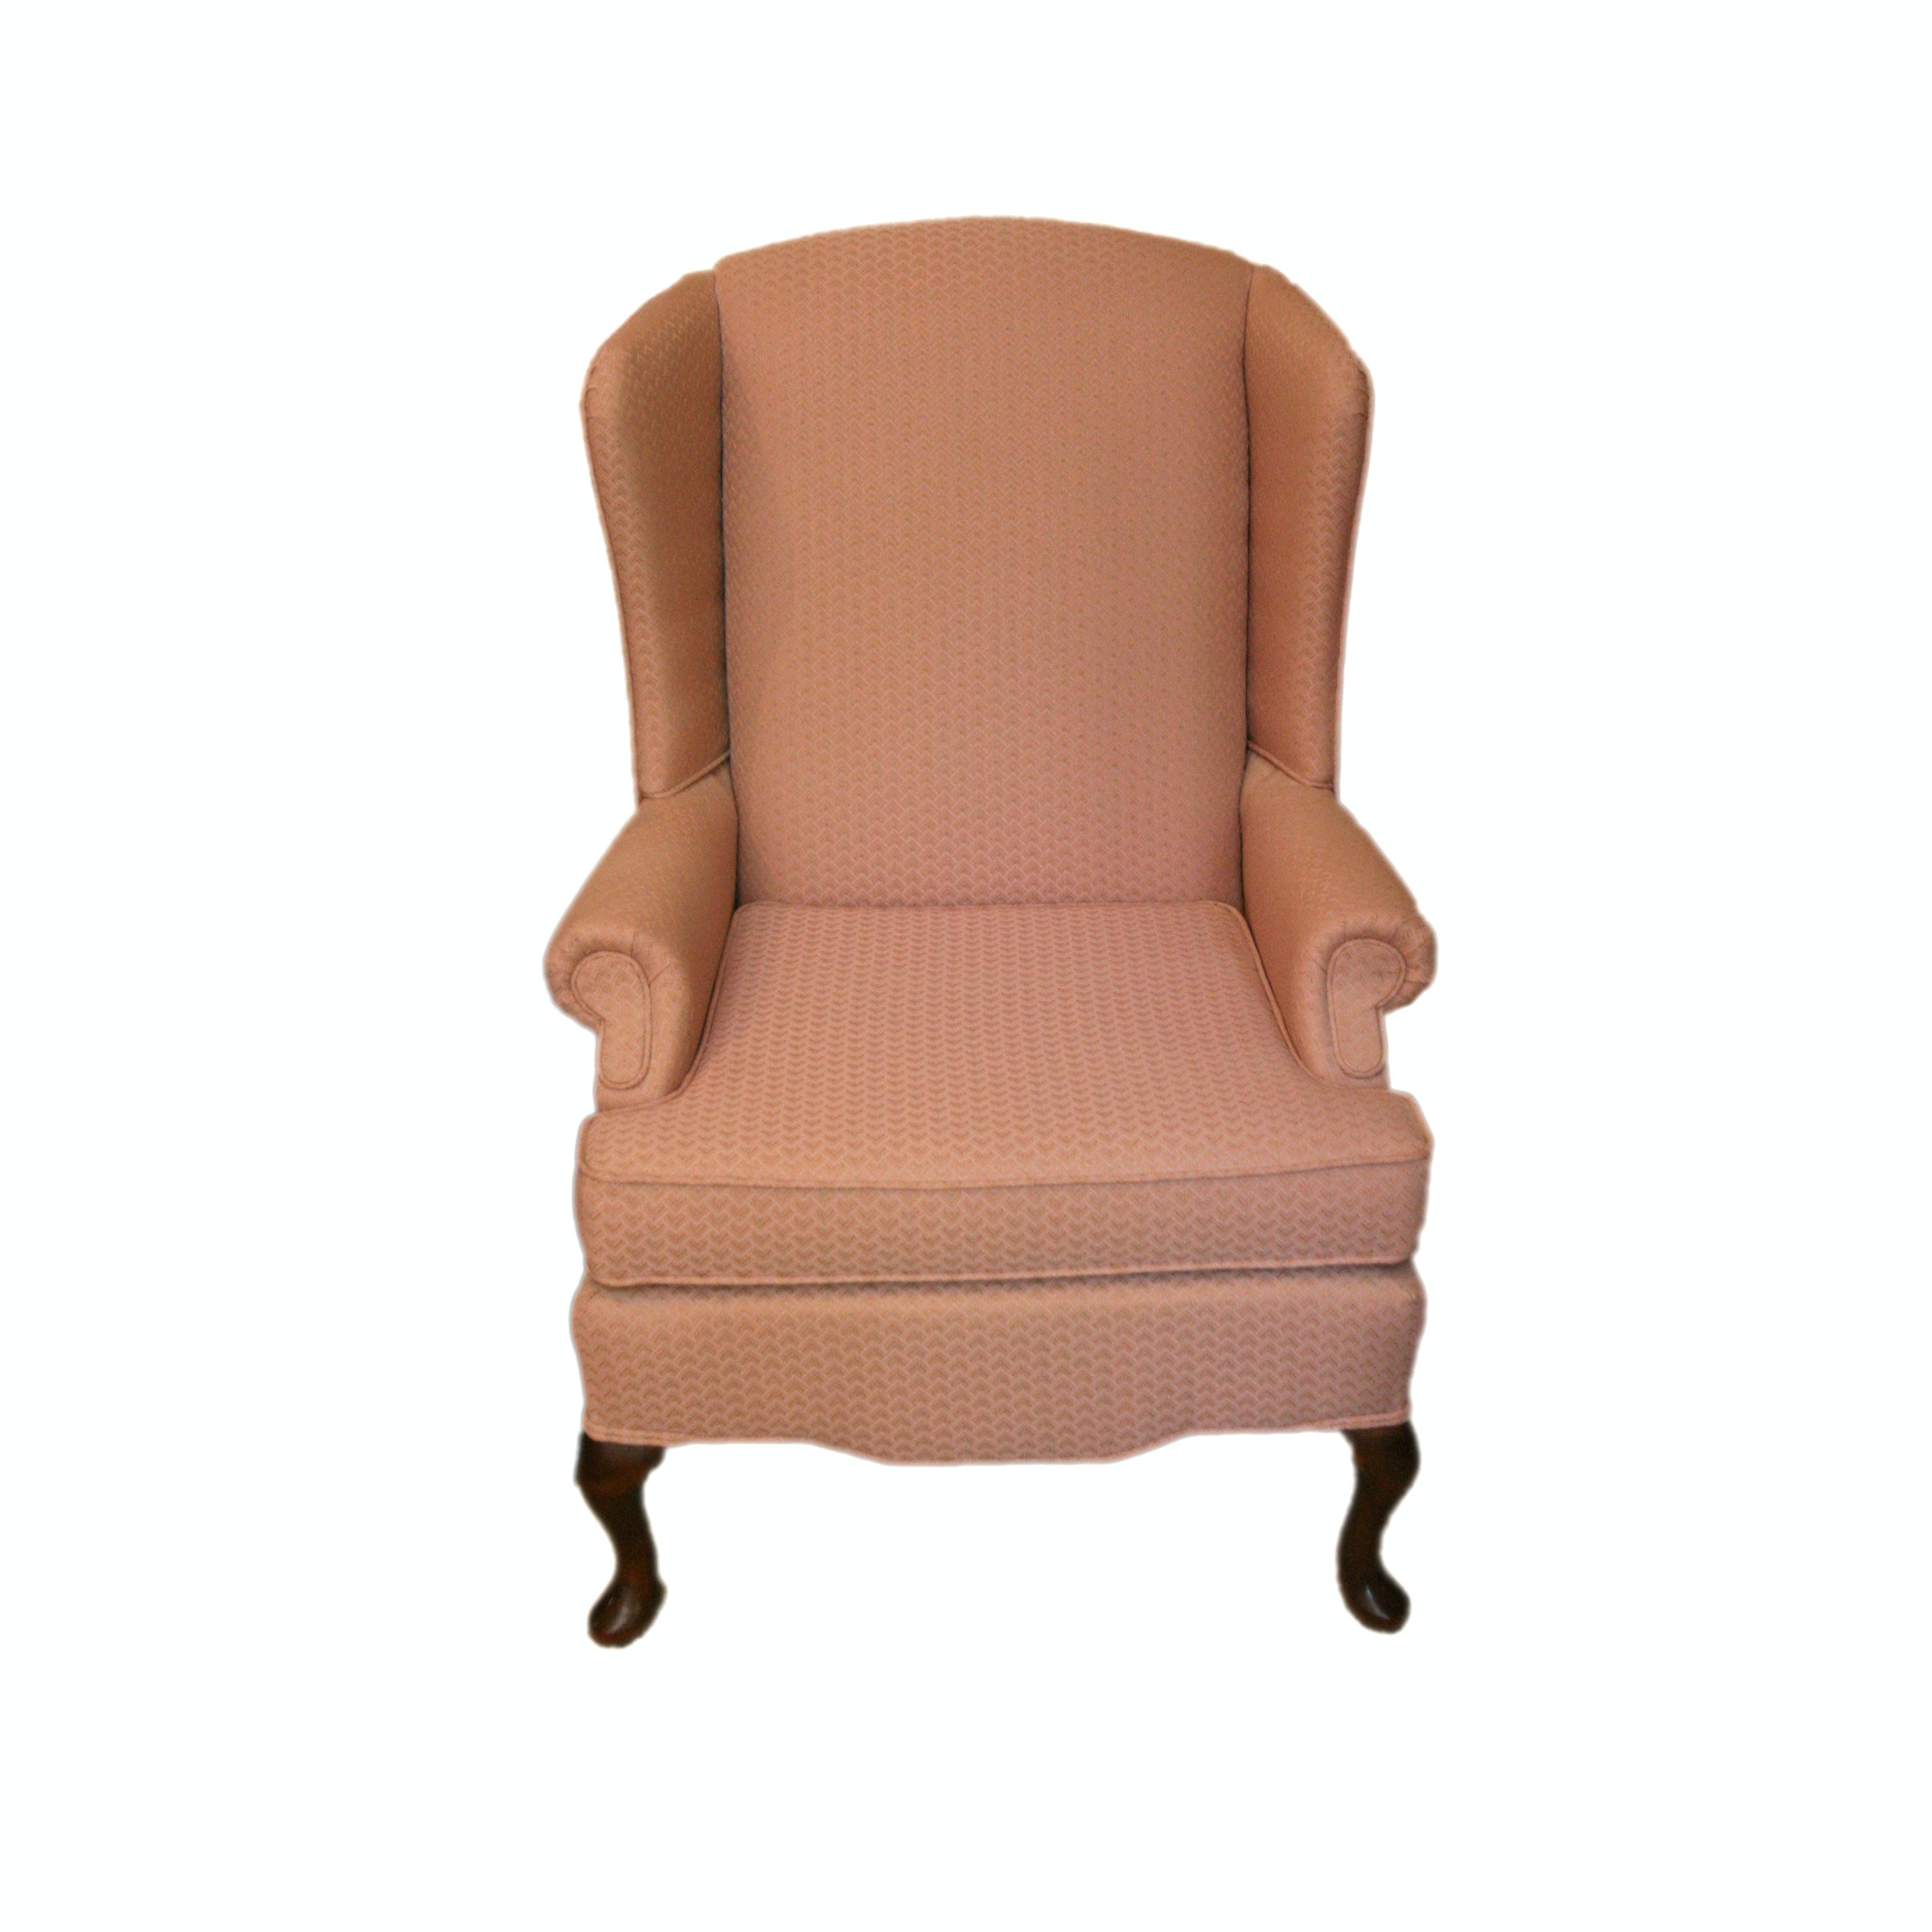 Queen Anne Style Upholstered Wingback Chair by Best Chairs, Inc.